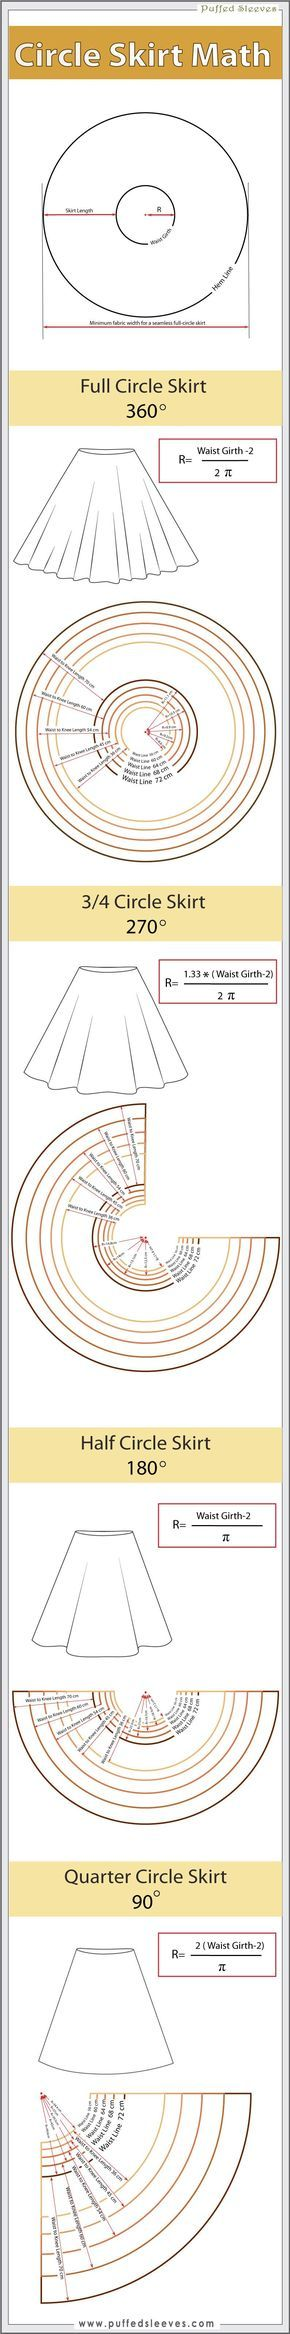 Circle skirt pattern Más they are forgetting that for even more fullness a circle and a half is good especially for flamenco skirts